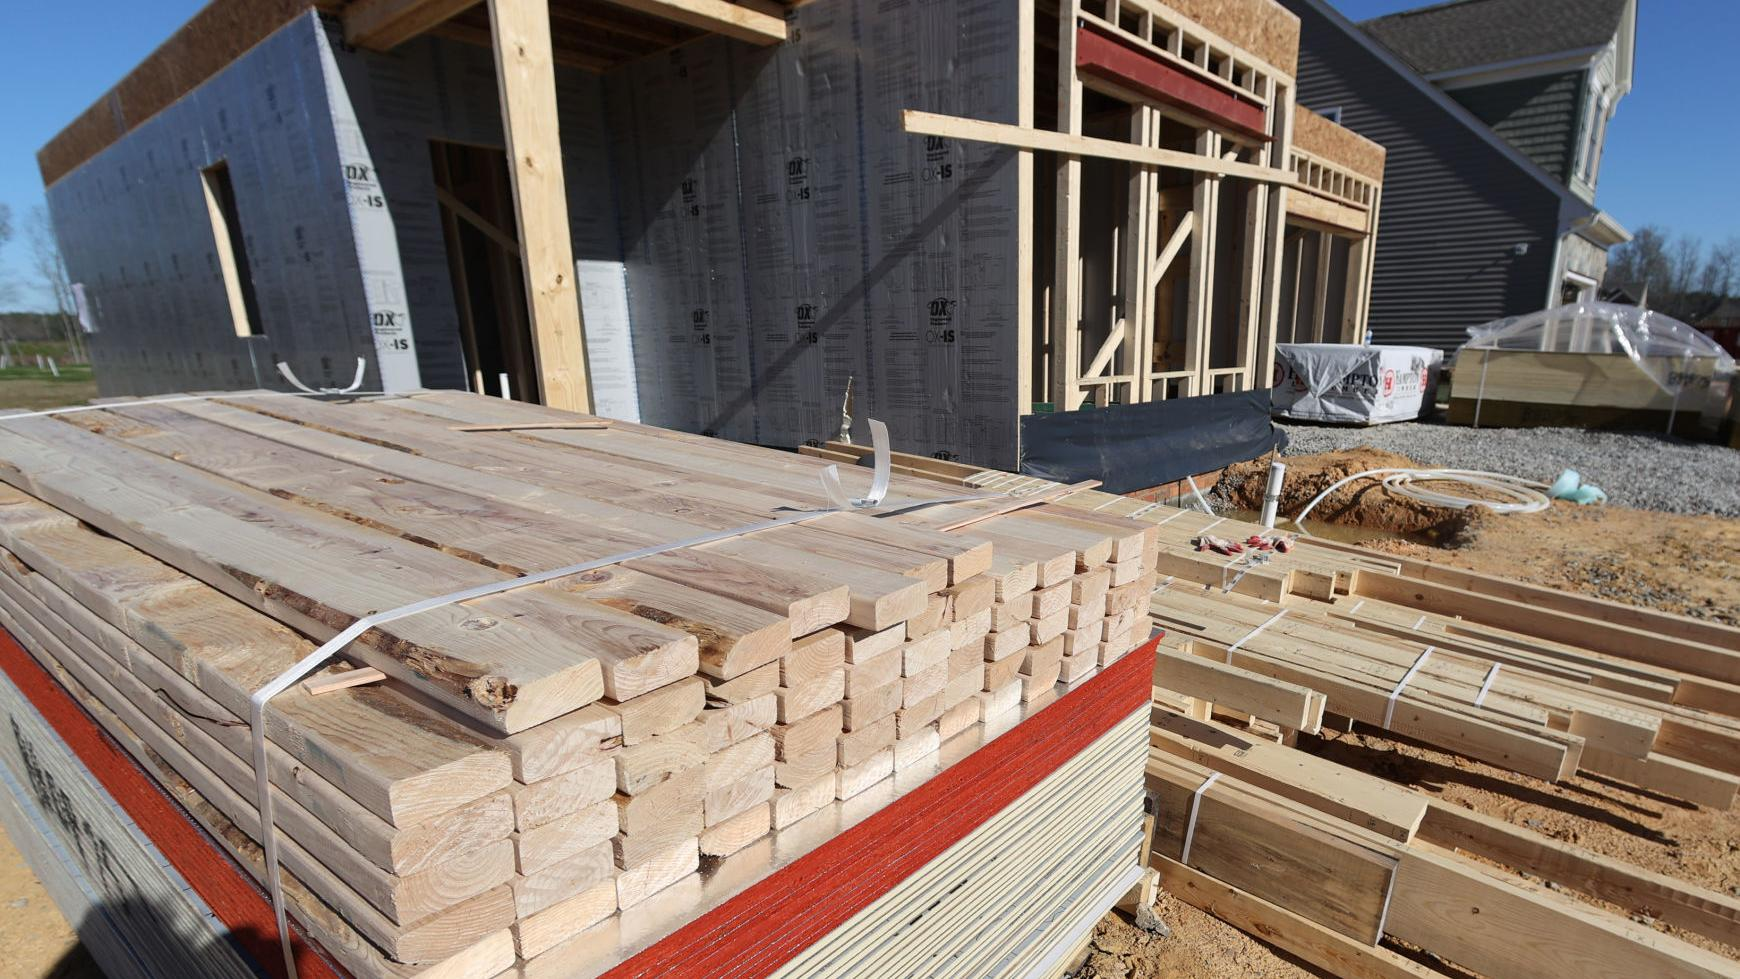 It S Been Crazy Pandemic Has Sent Lumber Prices Soaring Causing Home Construction Costs To Rise Amid Strong Demand Business News Richmond Com